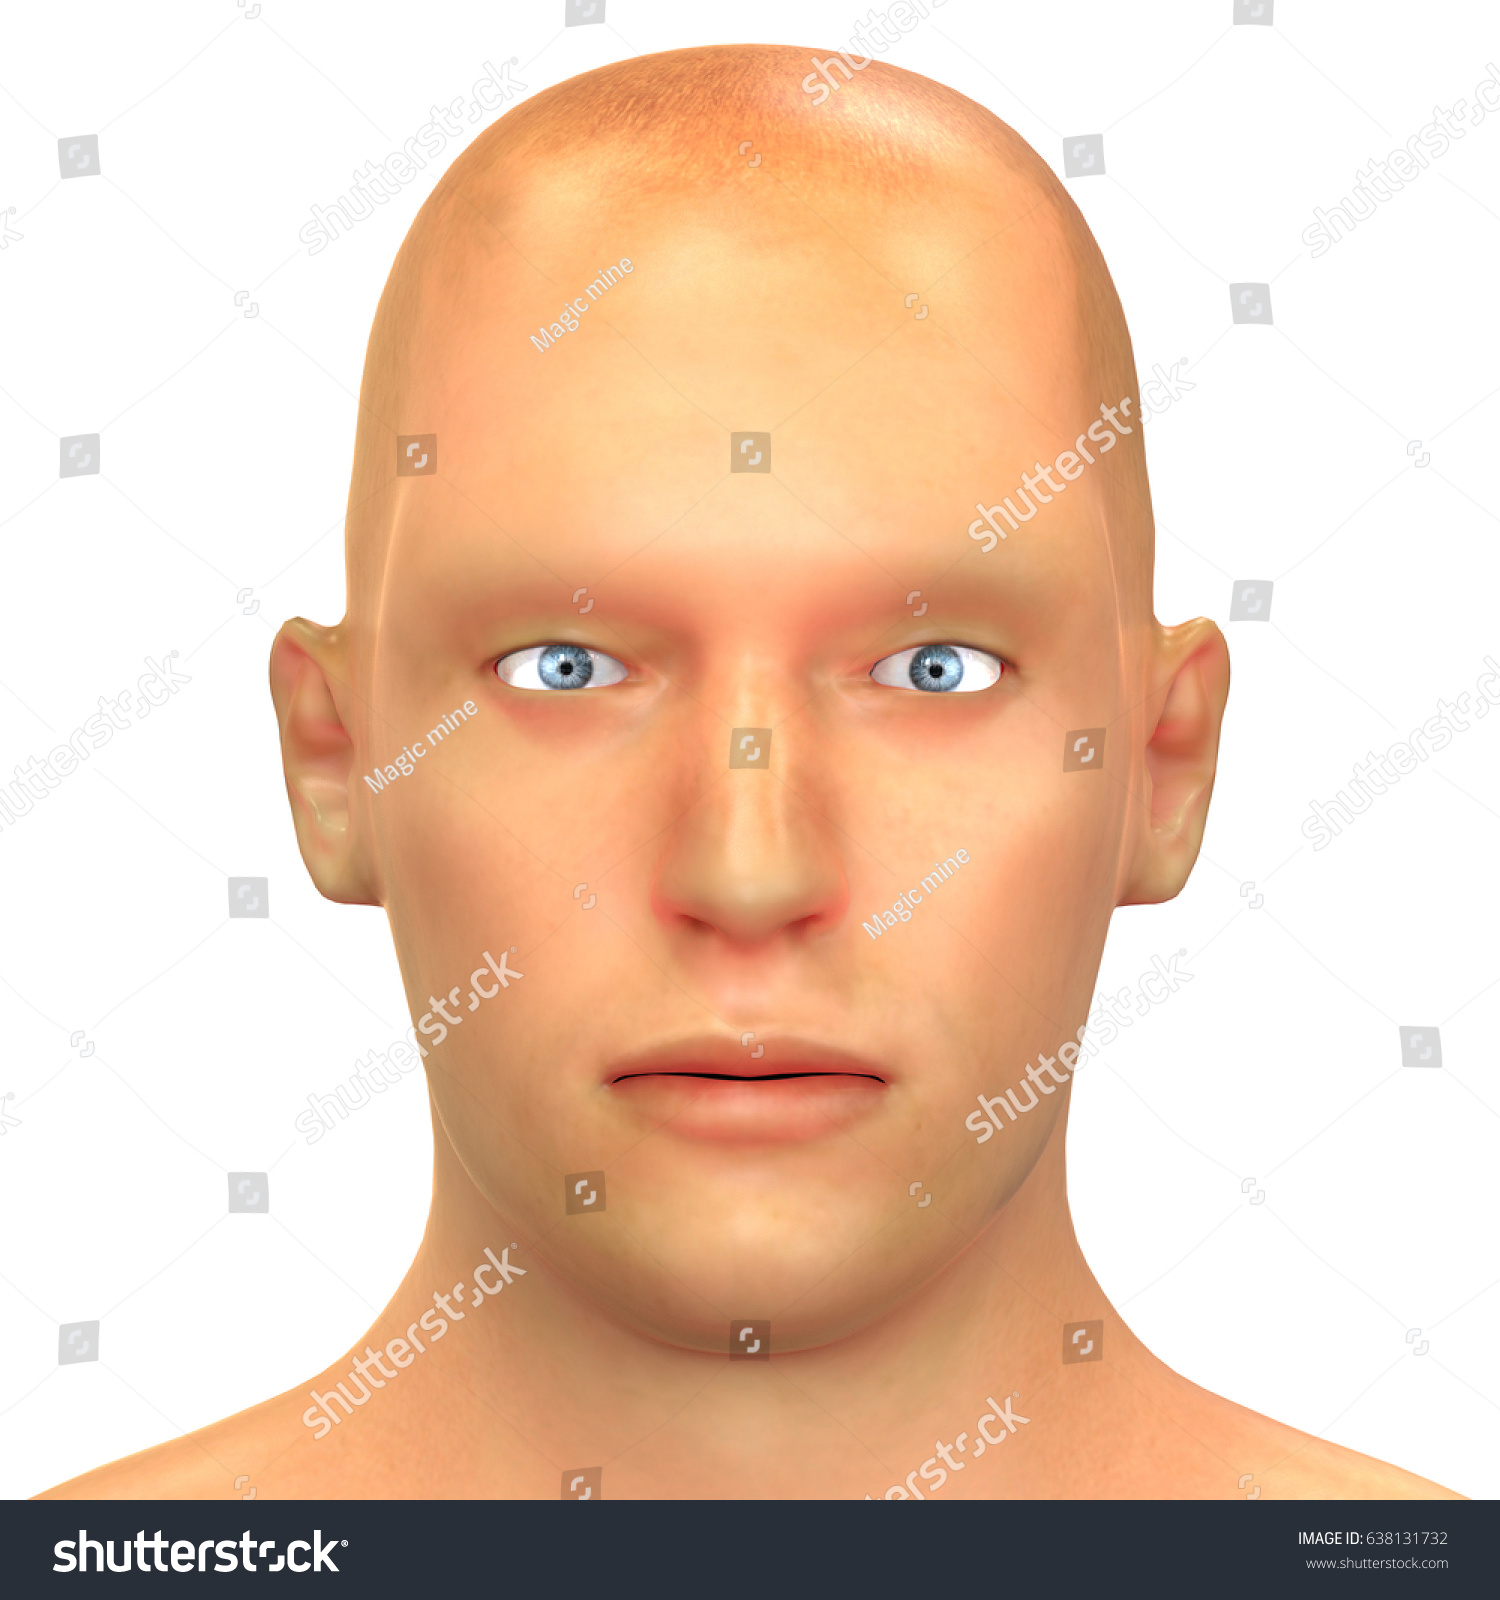 Royalty Free Stock Illustration Of Human Face Anatomy 3 D Stock